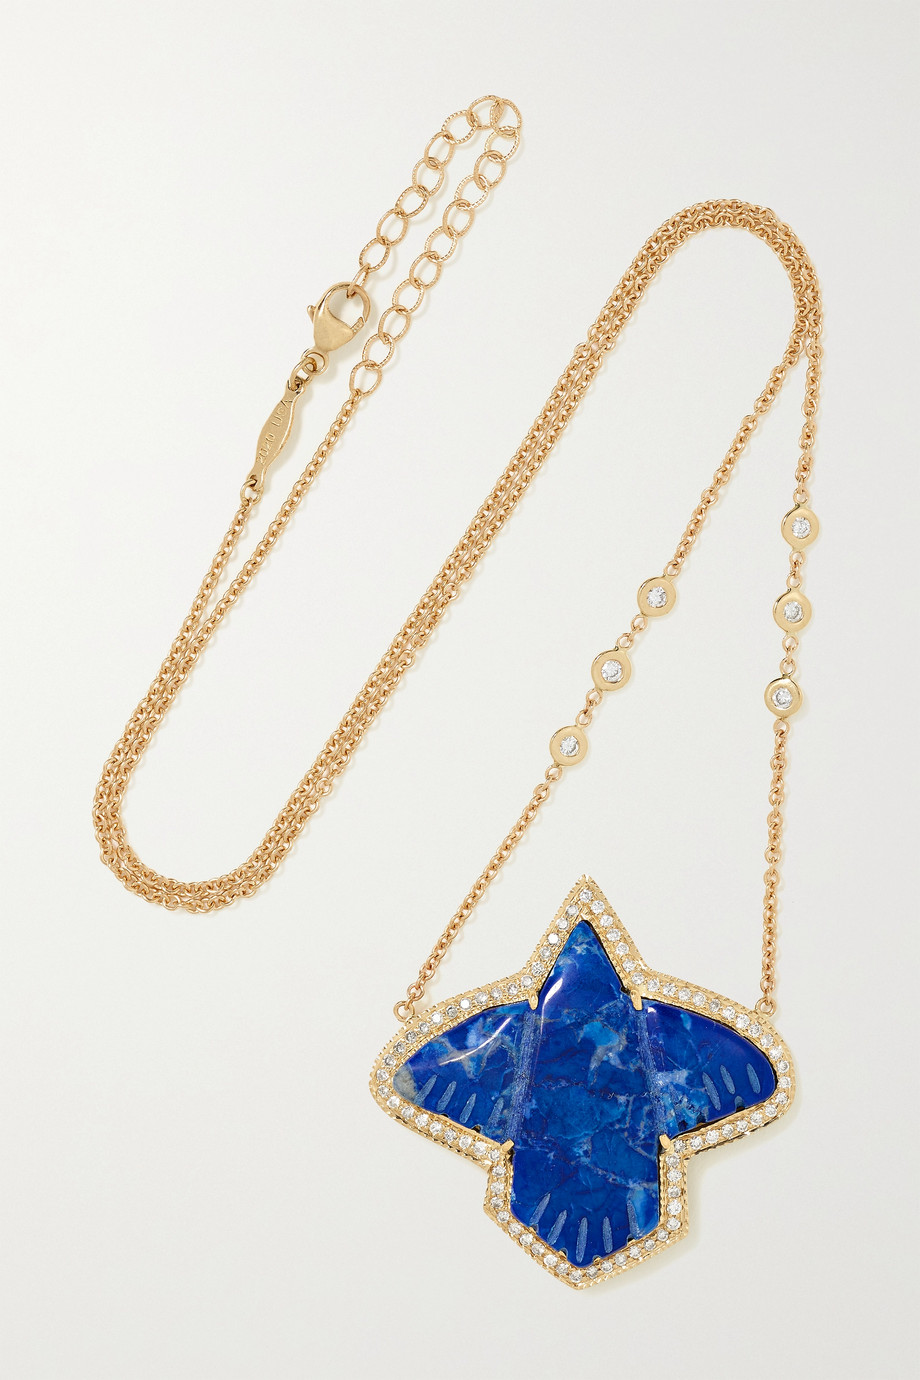 JACQUIE AICHE Thunderbird 18-karat gold, lapis lazuli and diamond necklace